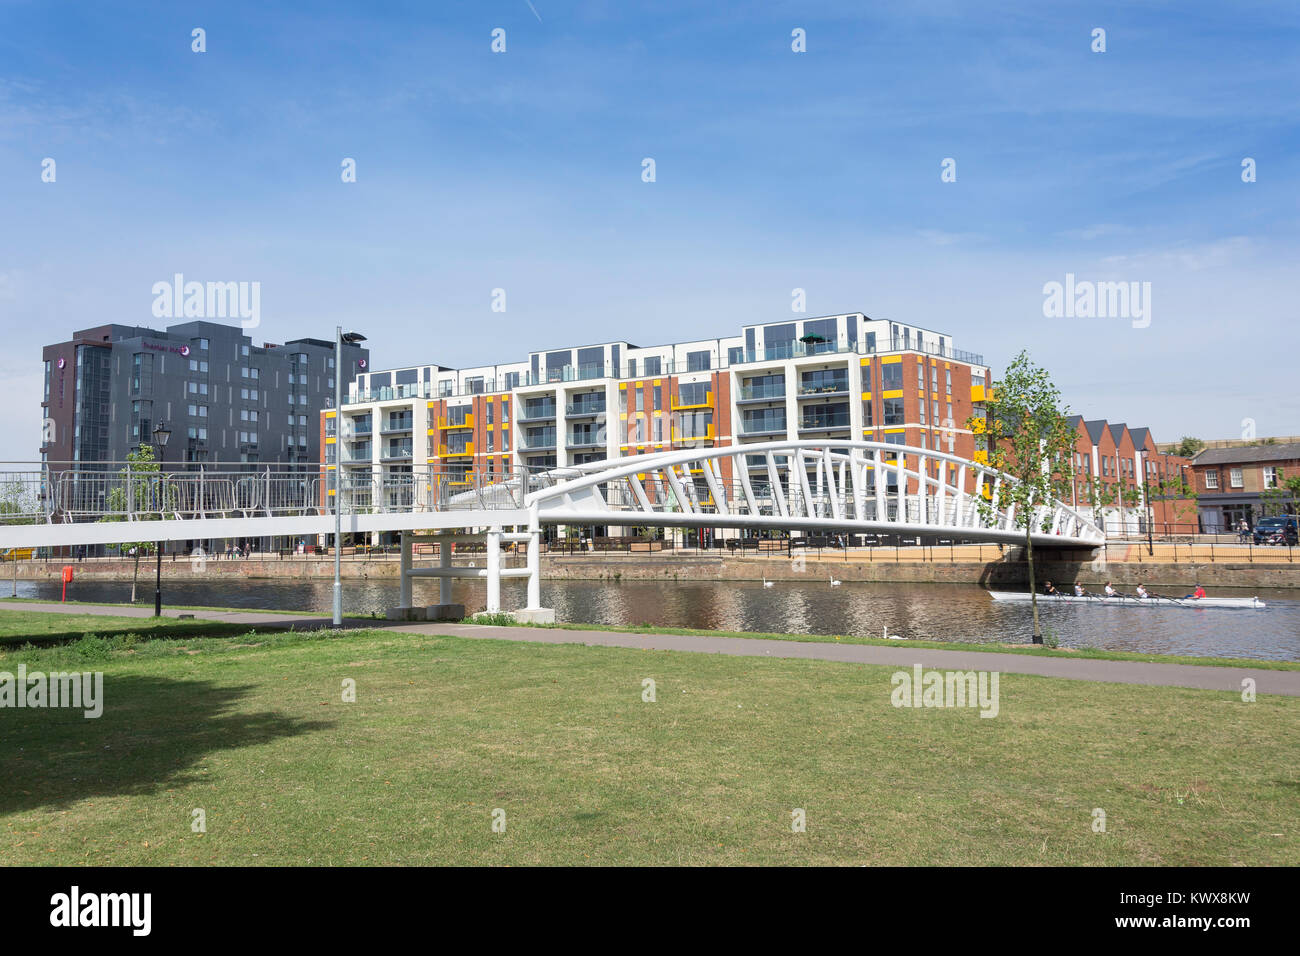 Riverside North End Bridge across River Great Ouse, Bedford, Bedfordshire, England, United Kingdom - Stock Image